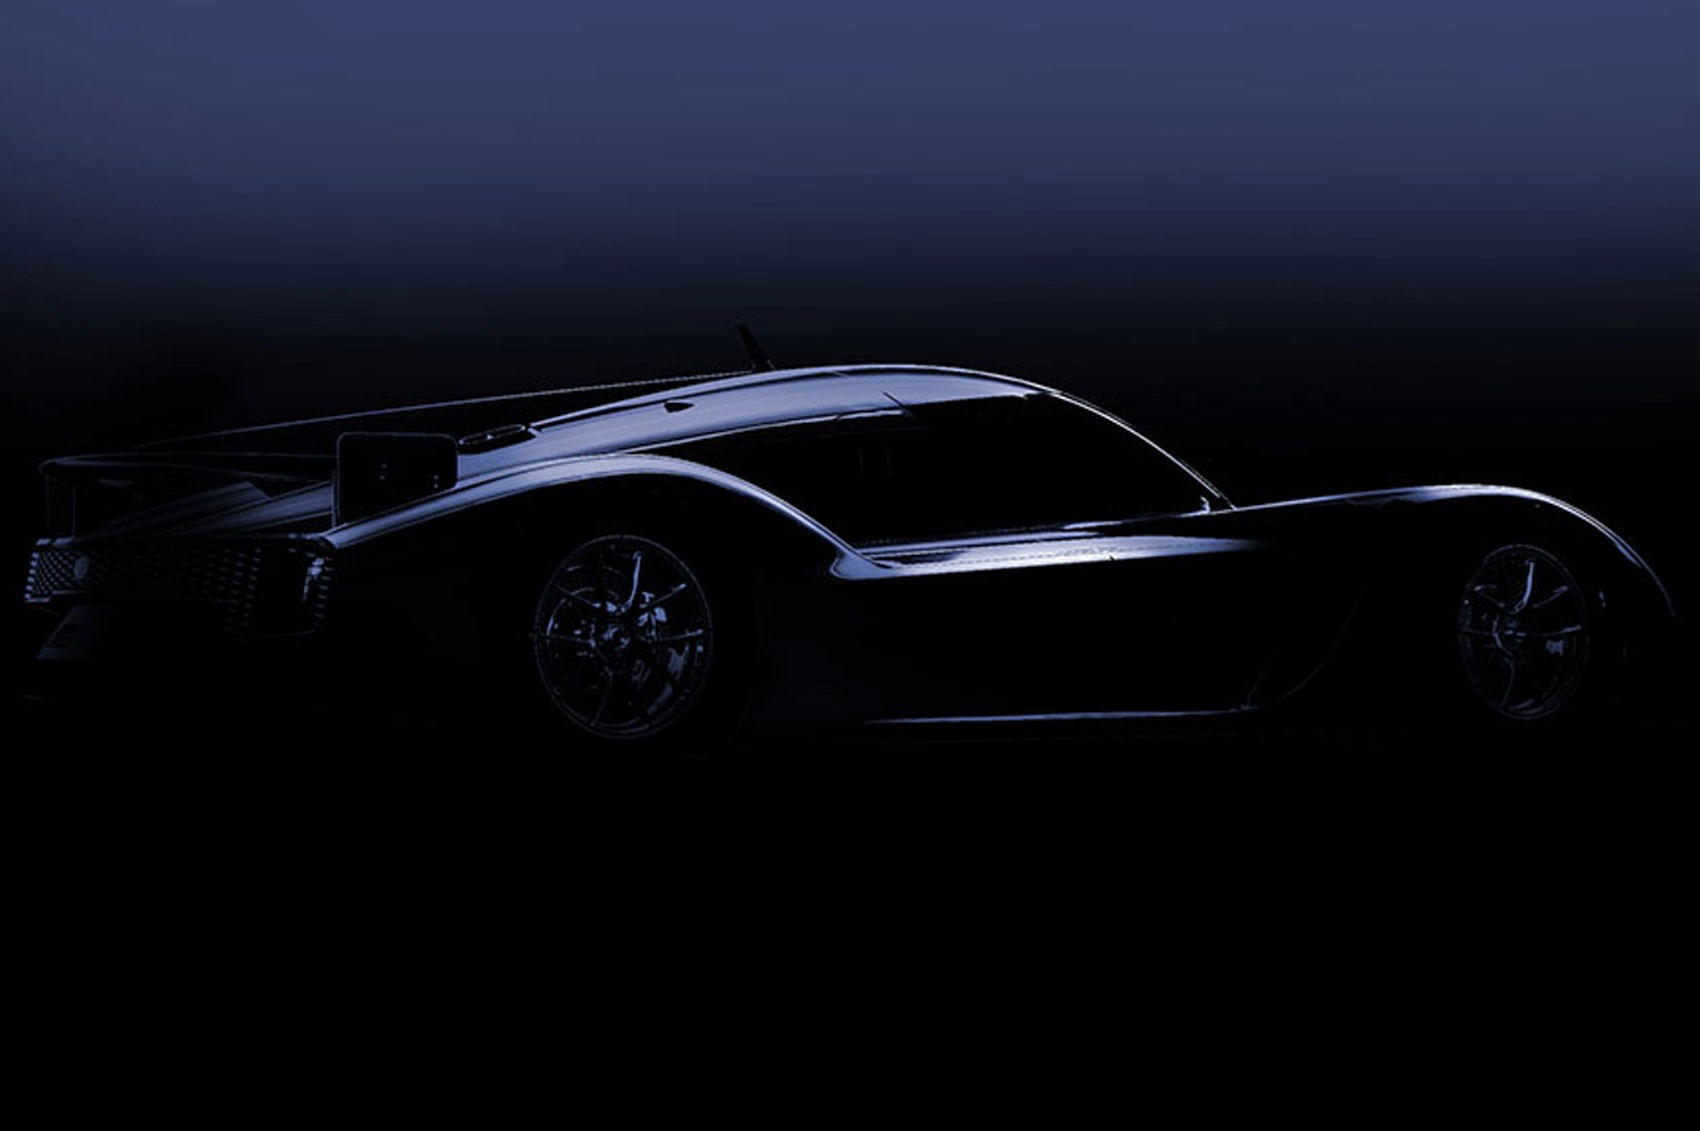 Toyota preparing Le Mans-inspired GR supercar concept